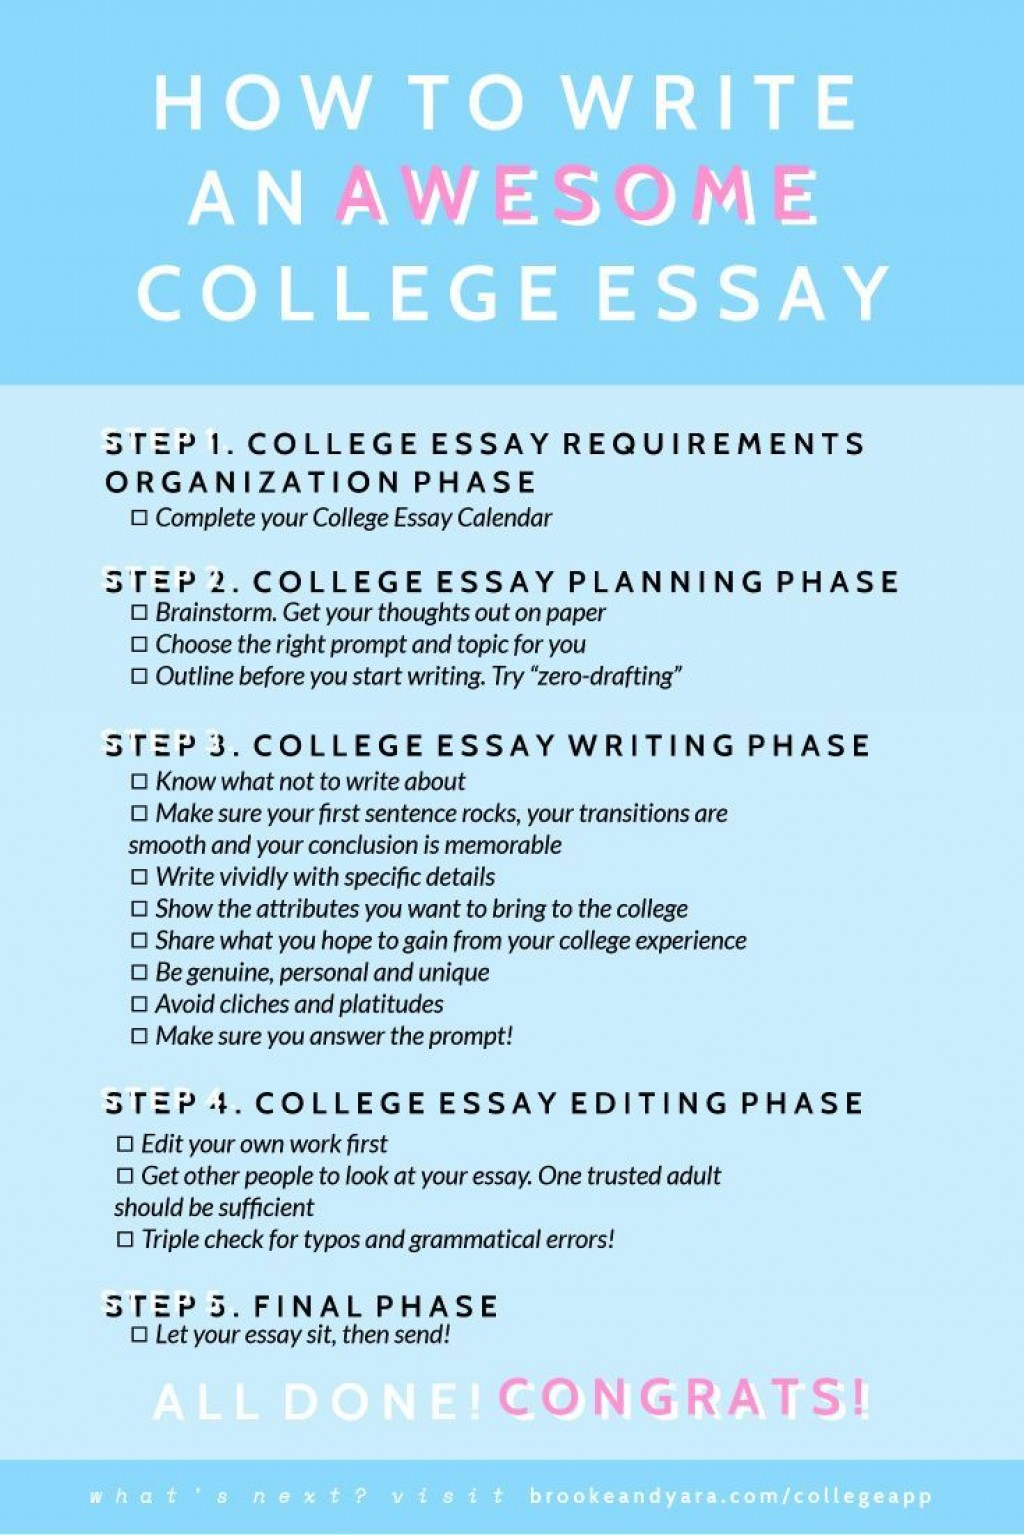 024 Essay Example College Amazing Editing Best Services Application Free Checklist Large